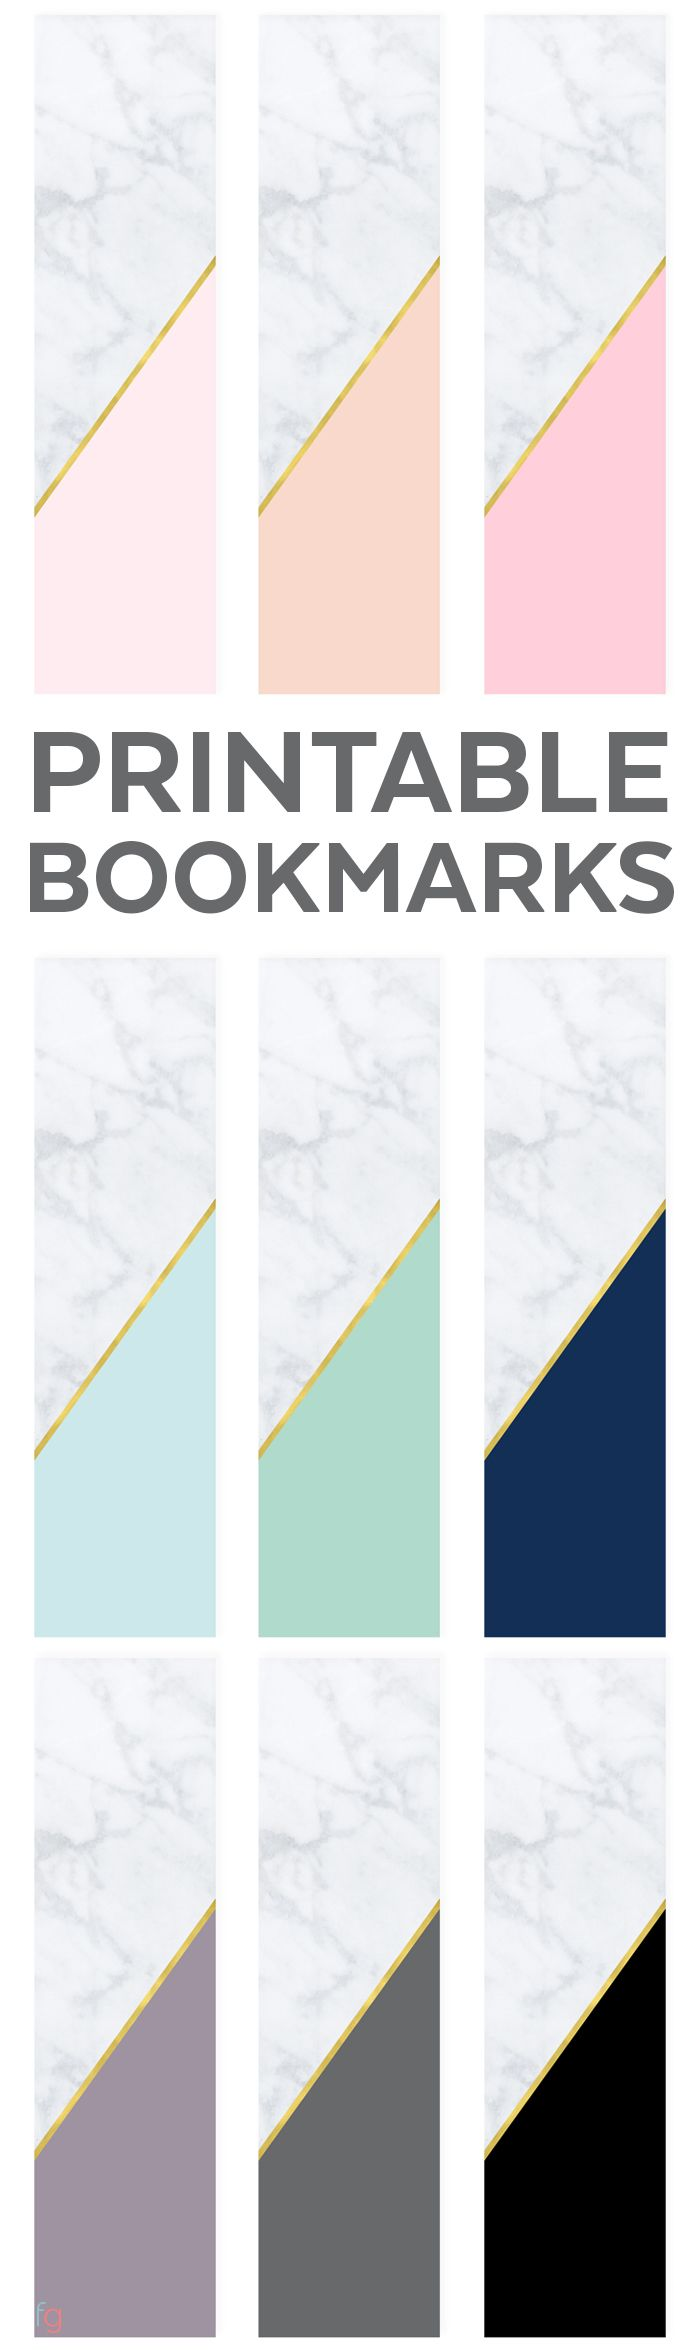 Bookmarks to color adults - Bookmarks Printable Free Printable Bookmarks Free Book Lovers Free Printable Bookmarks For Adults